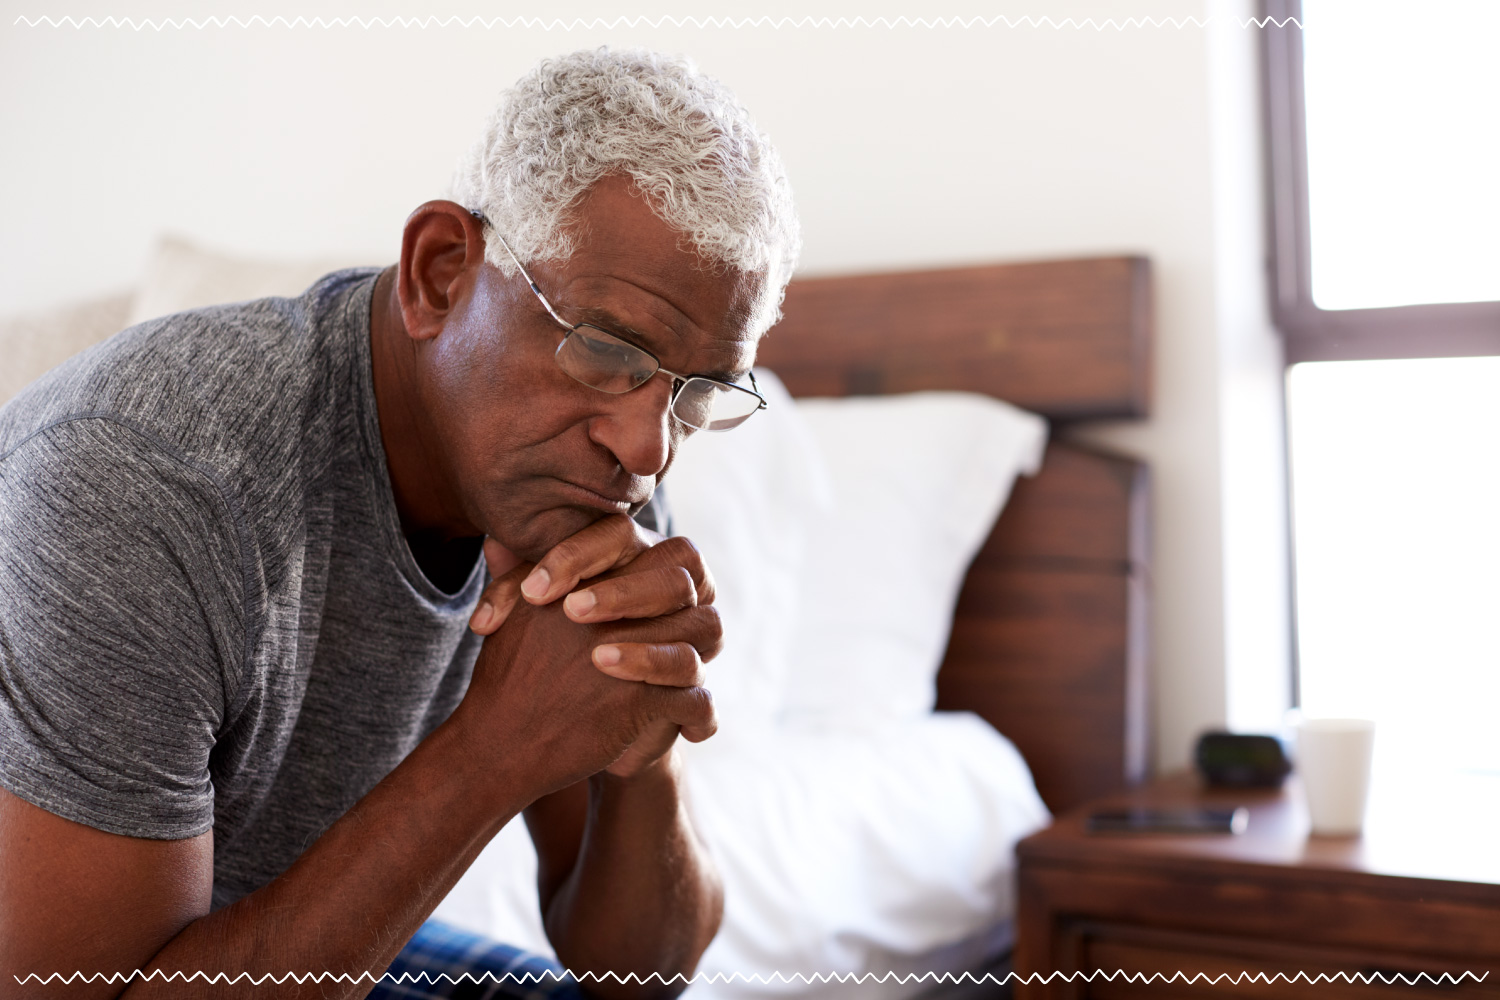 elderly man alone in bedroom grieving